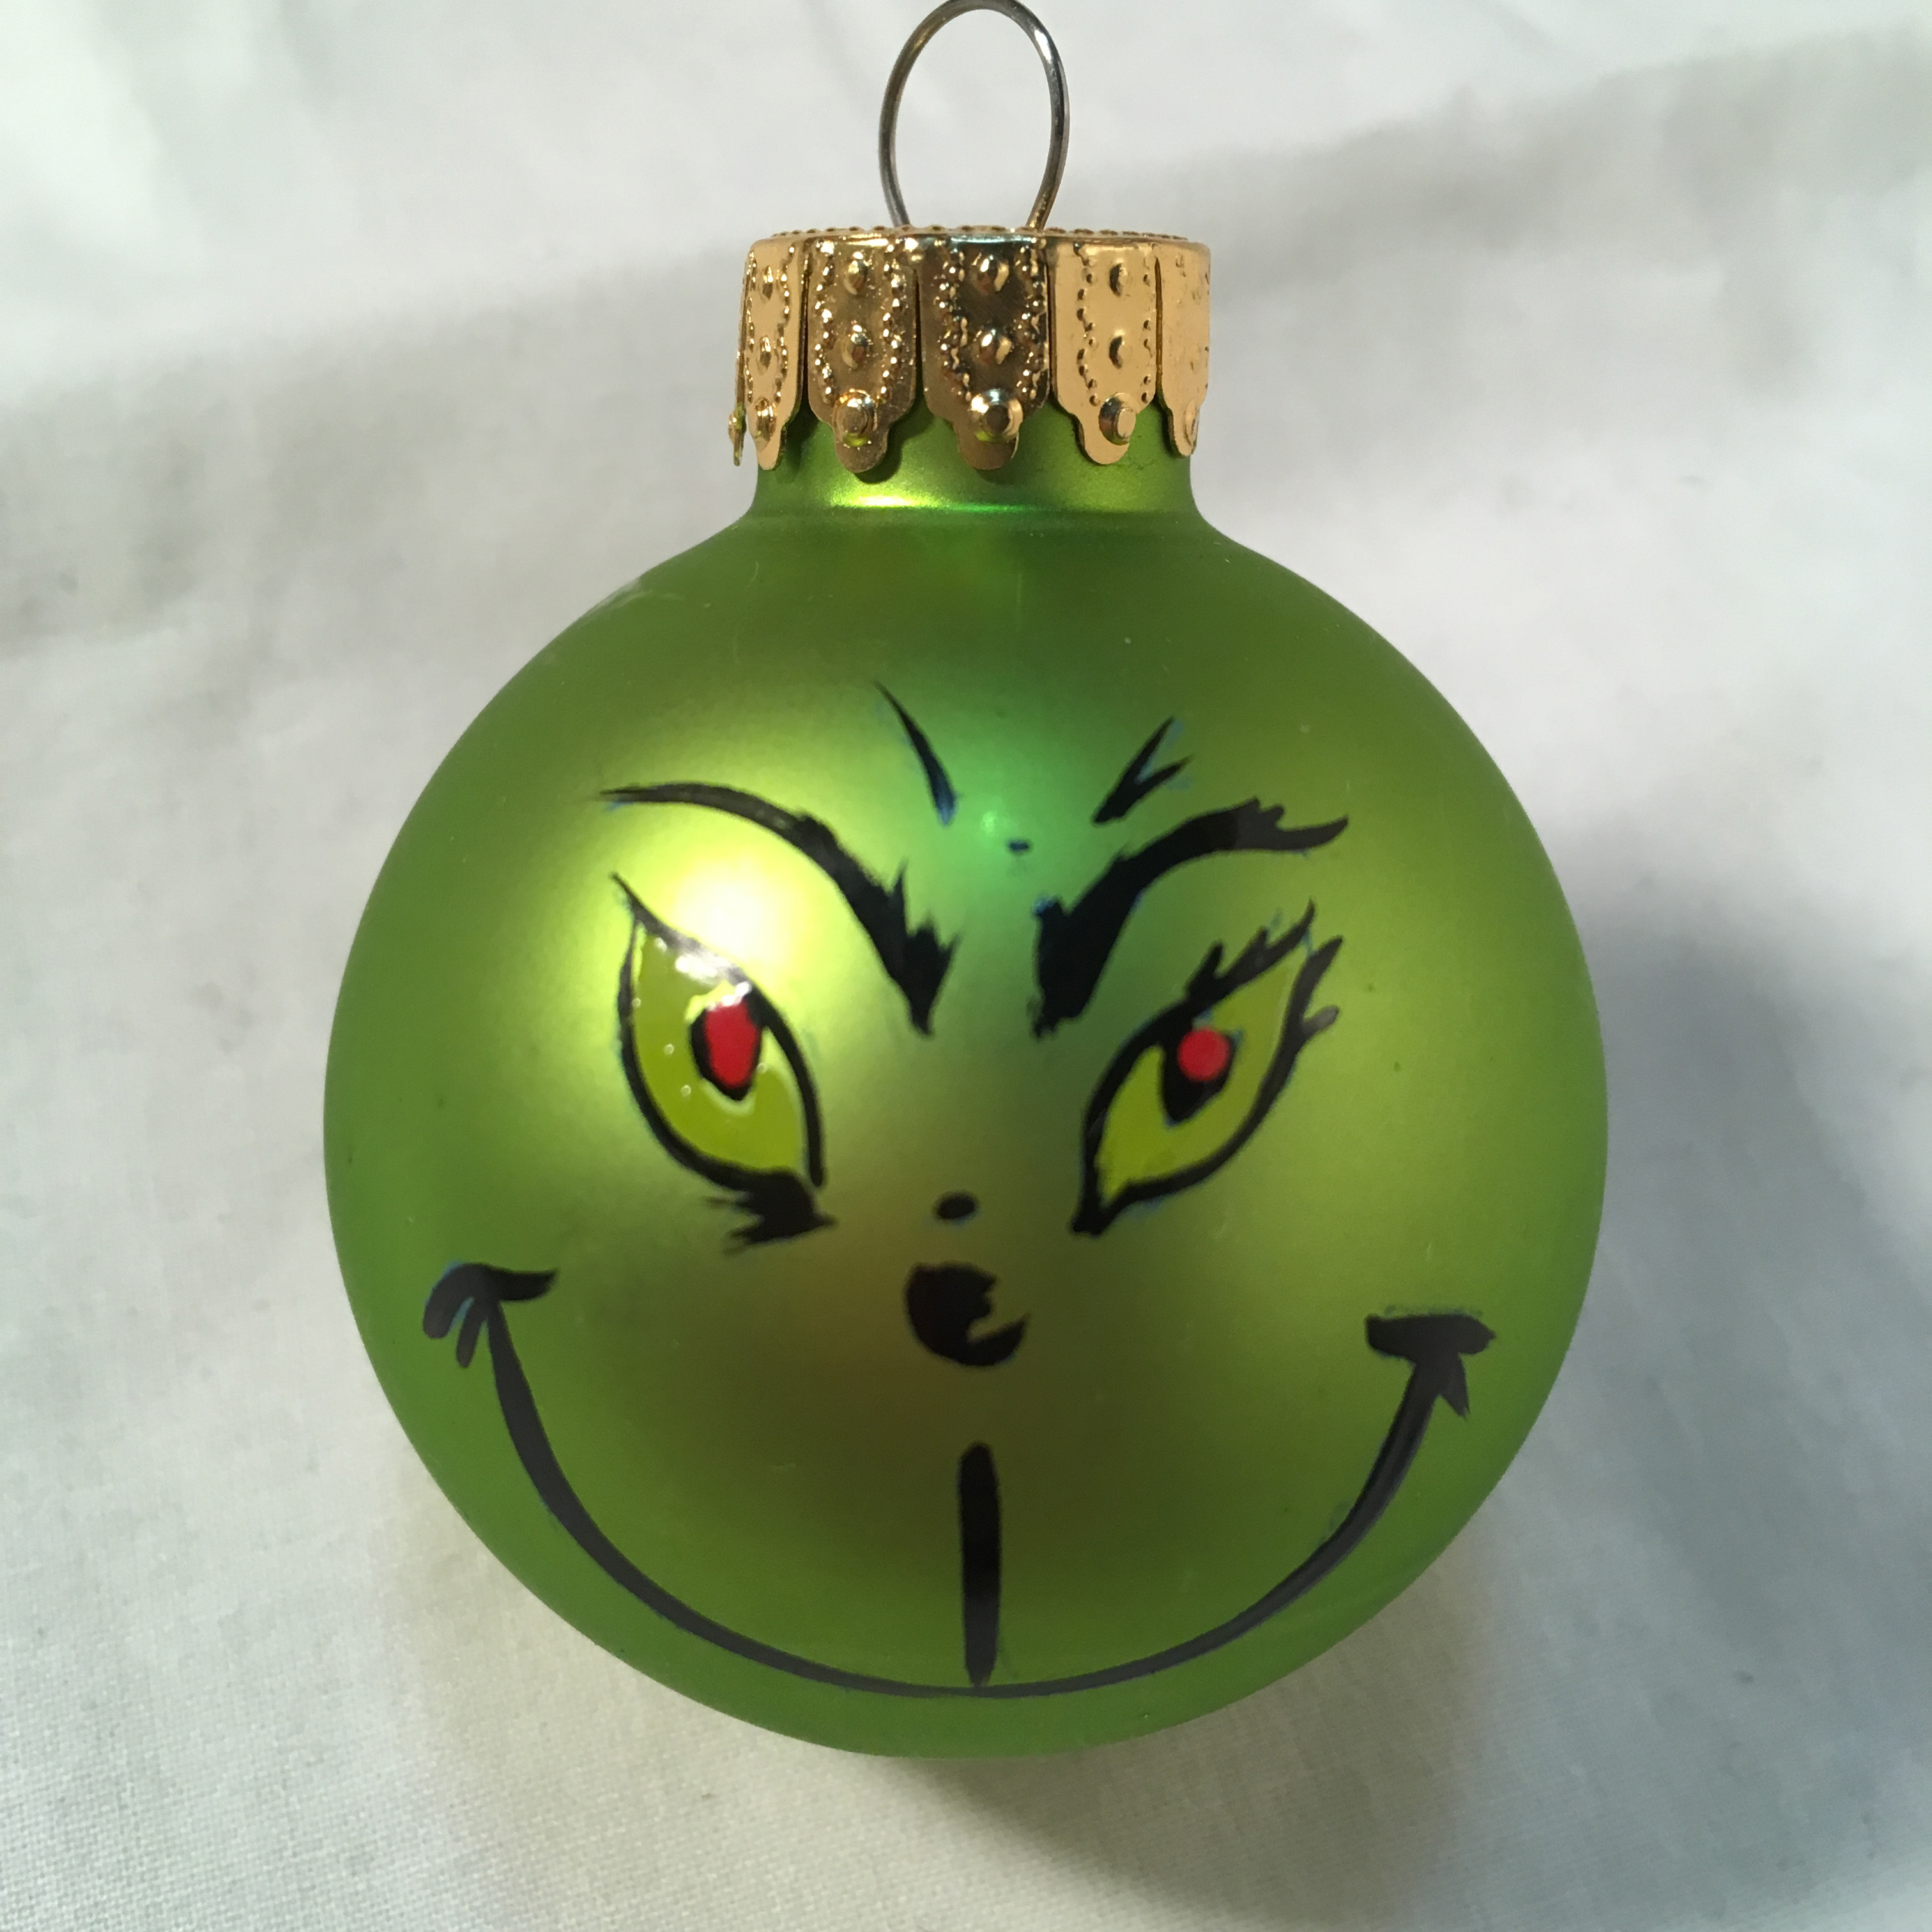 Small Grinch ornament